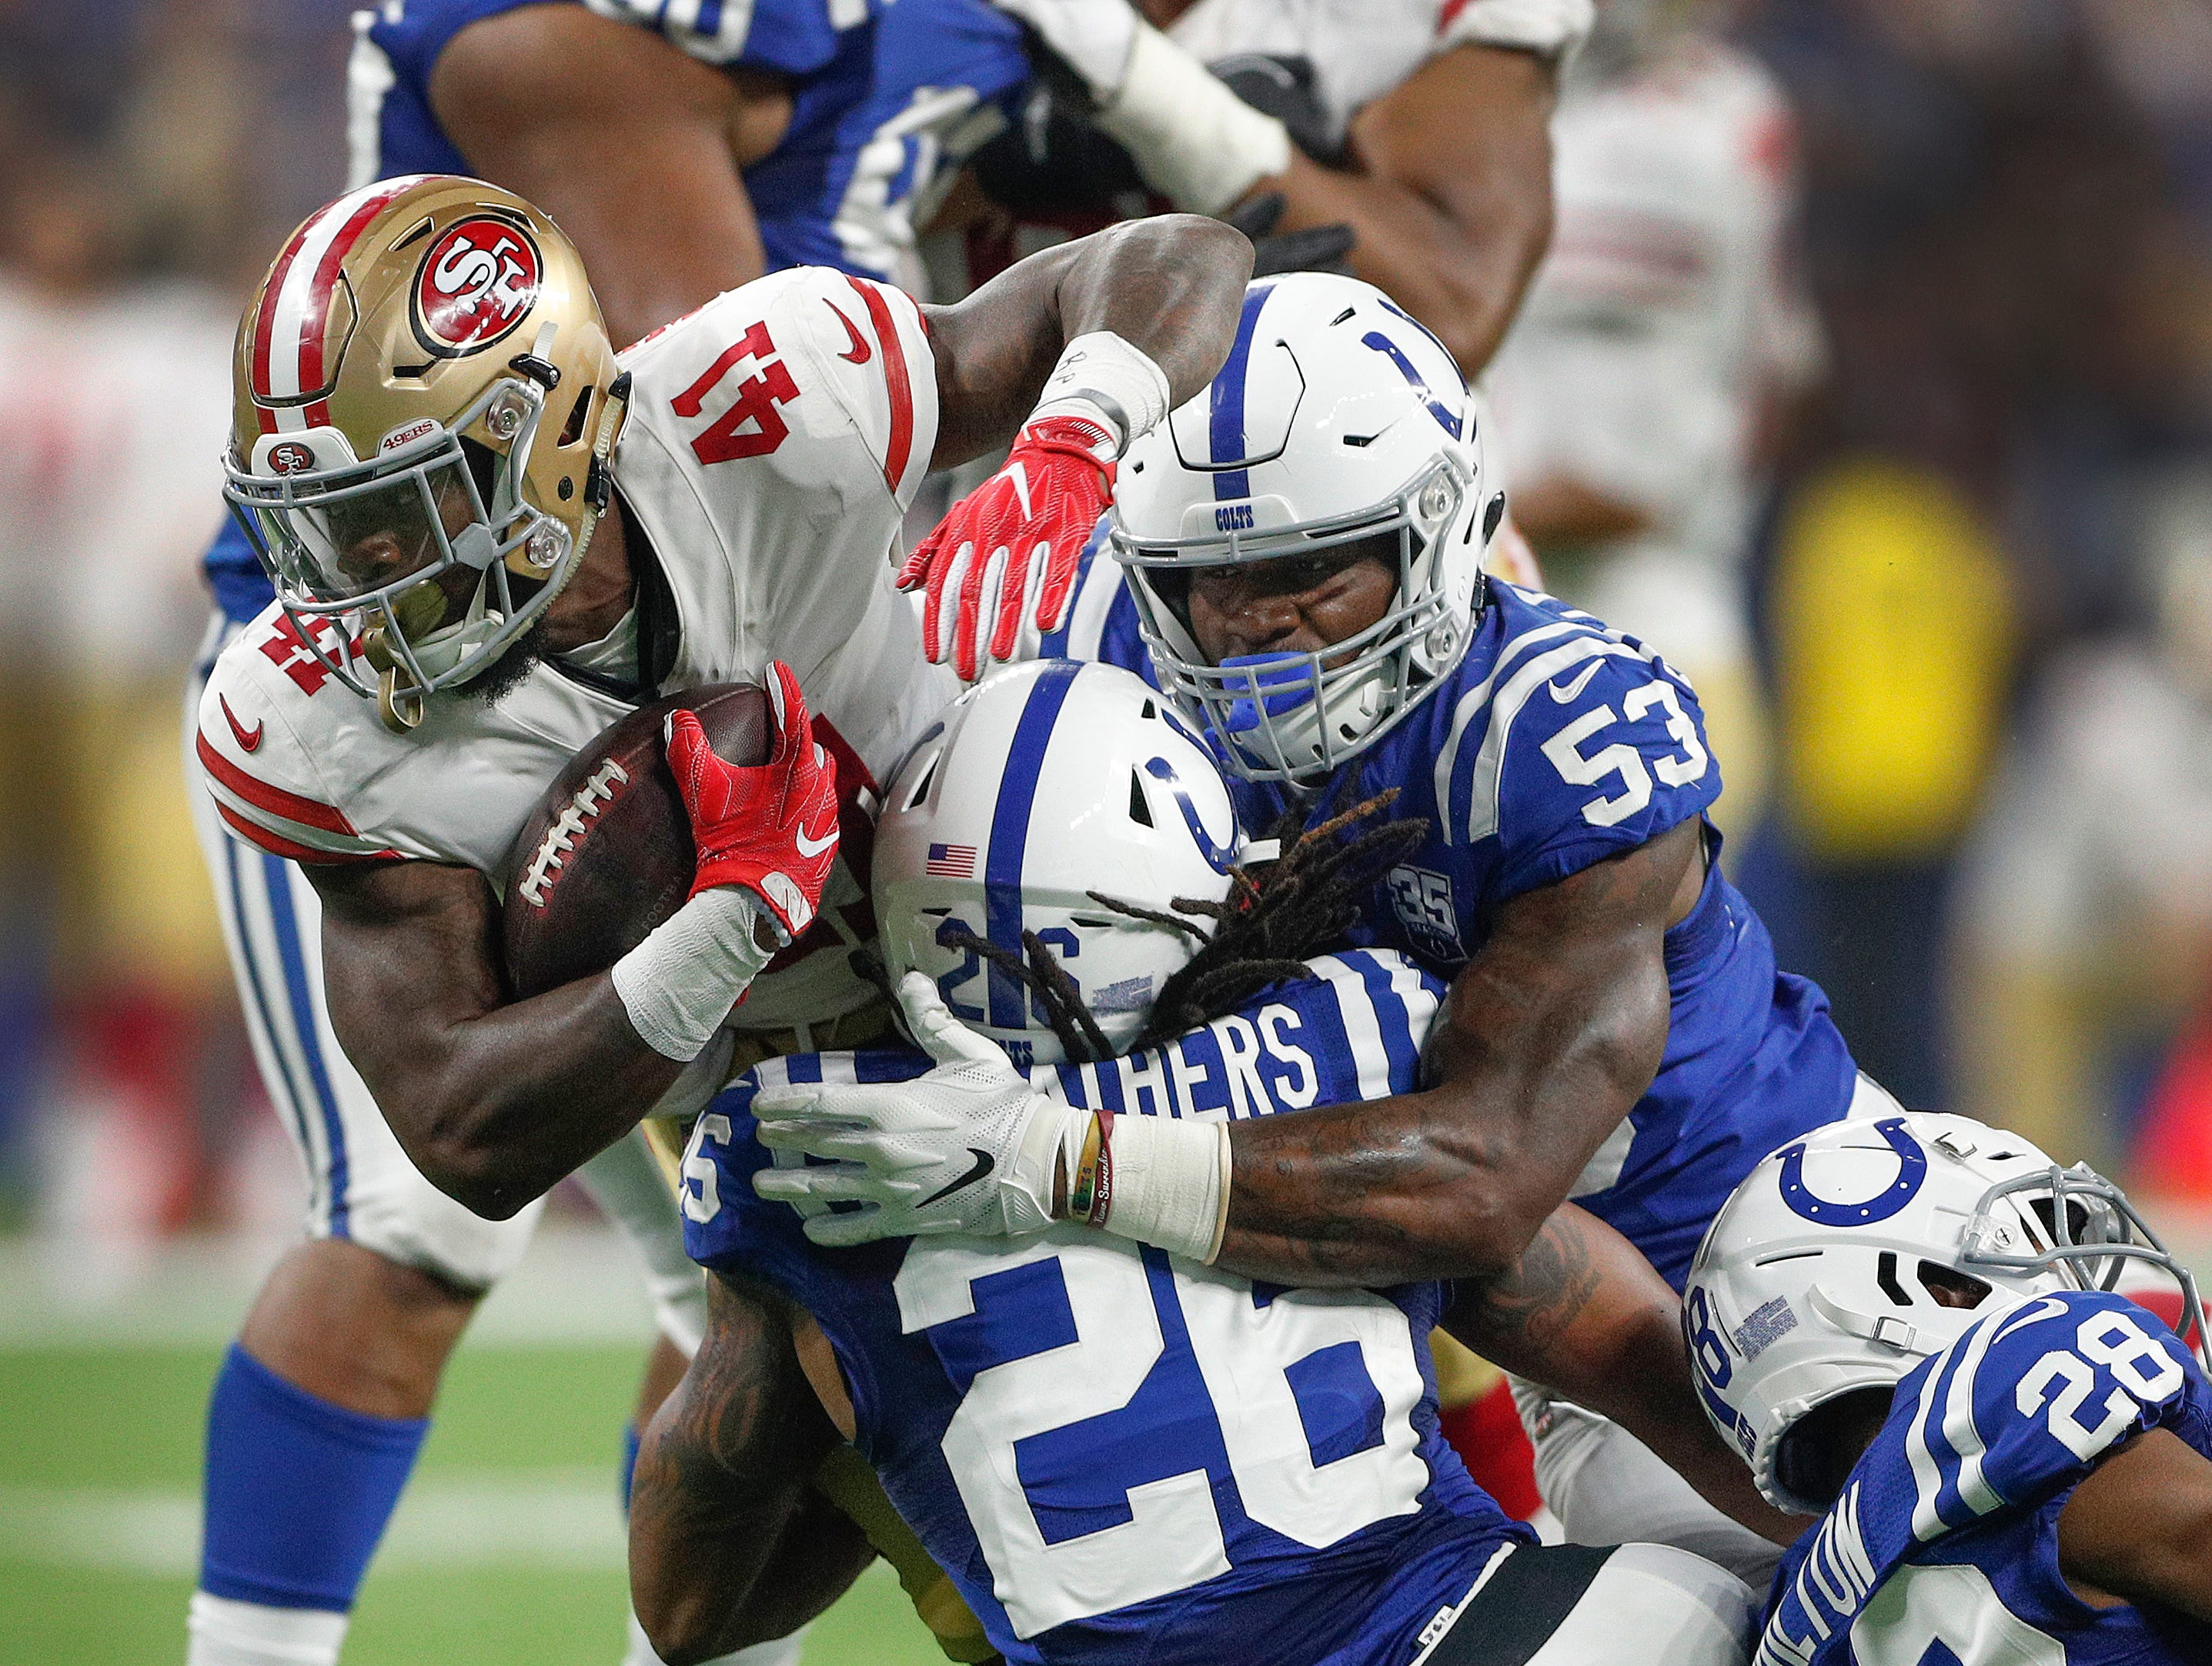 Indianapolis Colts linebacker Darius Leonard (53) and Clayton Geathers (26) team up to tackleSan Francisco 49ers running back Jeff Wilson (41) in the first half of their preseason football game at Lucas Oil Stadium Saturday, August 25, 2018.